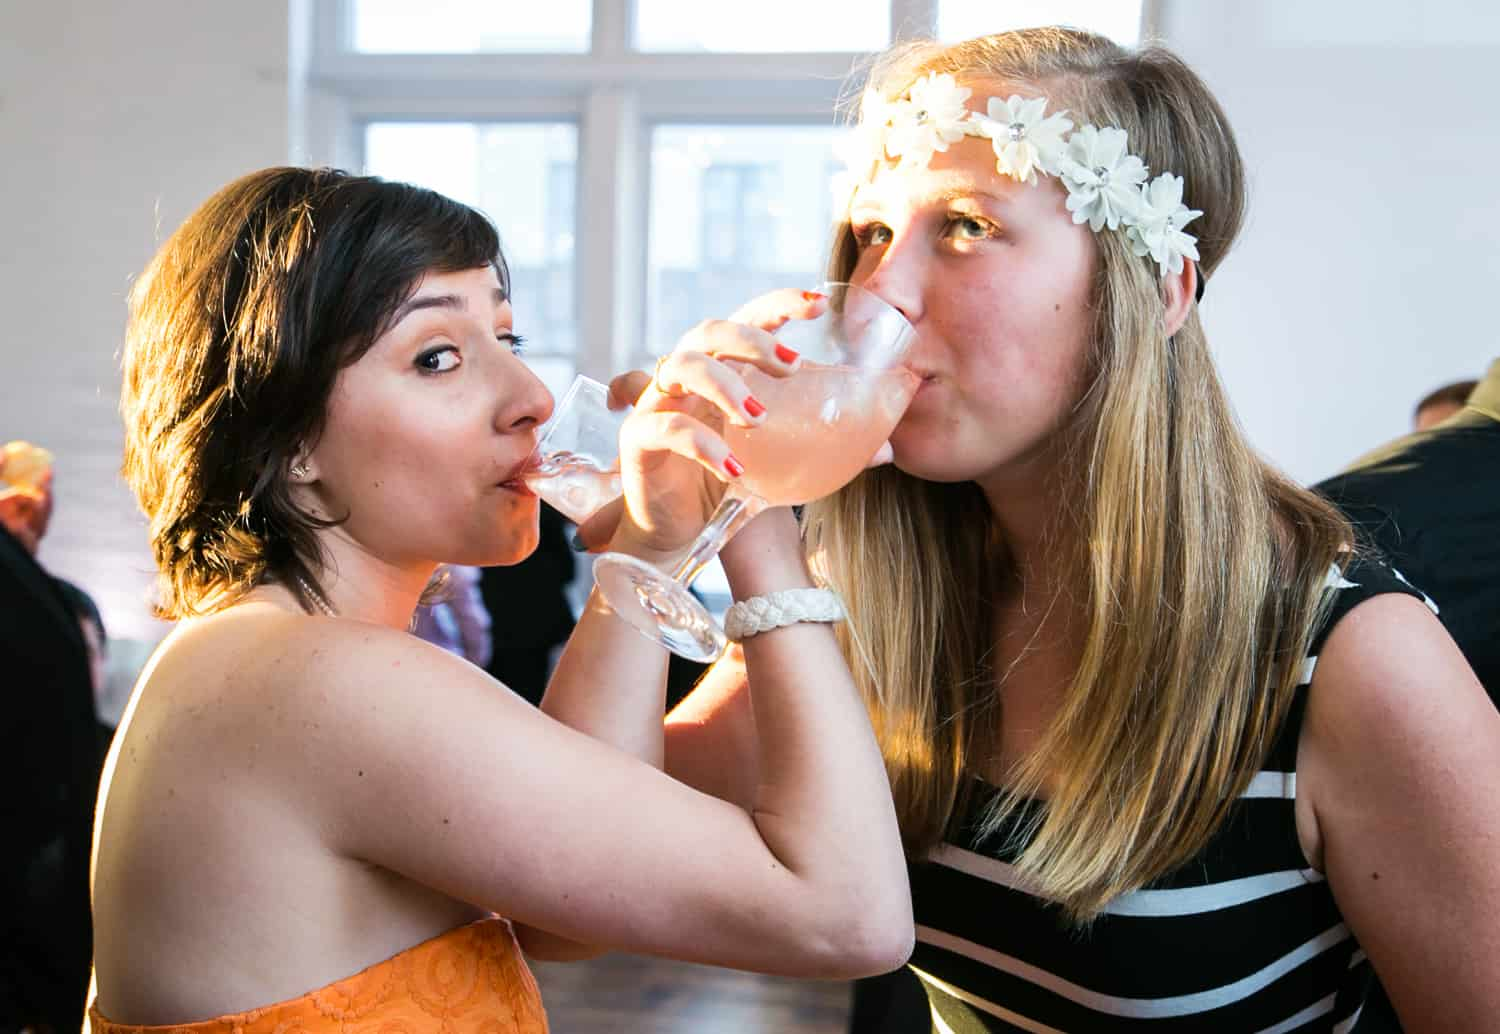 Two girls with entwined arms drinking from glasses for an article on how to plan the perfect bar mitzvah